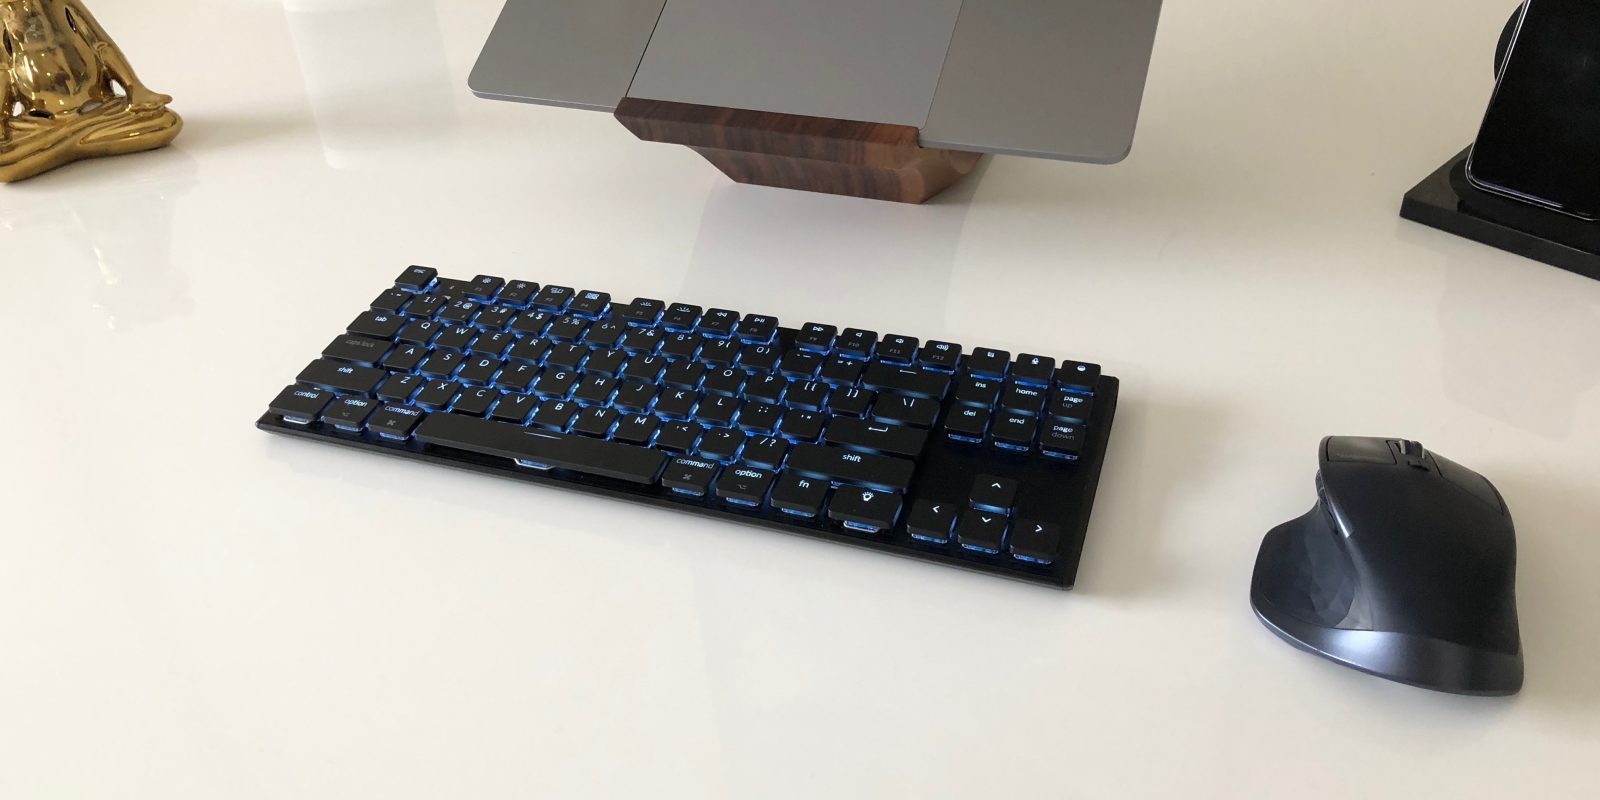 Review: Keychron K1 is a compelling mechanical keyboard for Mac with